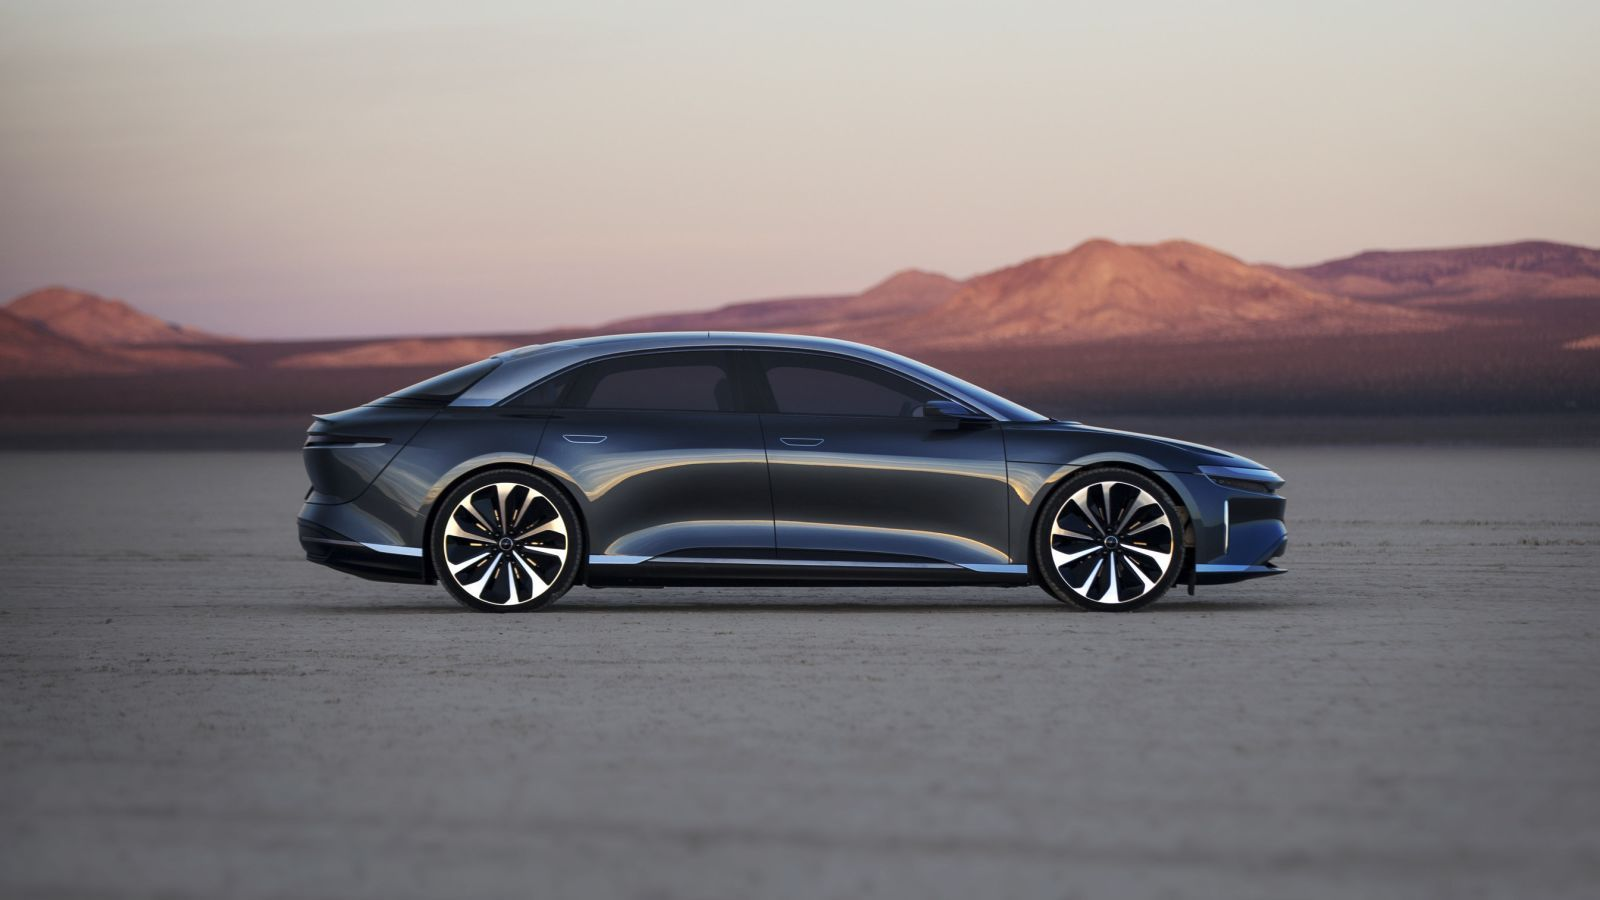 Lucid Motors Confirms 1 Billion Investment From Saudis Plans First Electric Car For 2020 Car Wallpapers Luxury Automotive Car